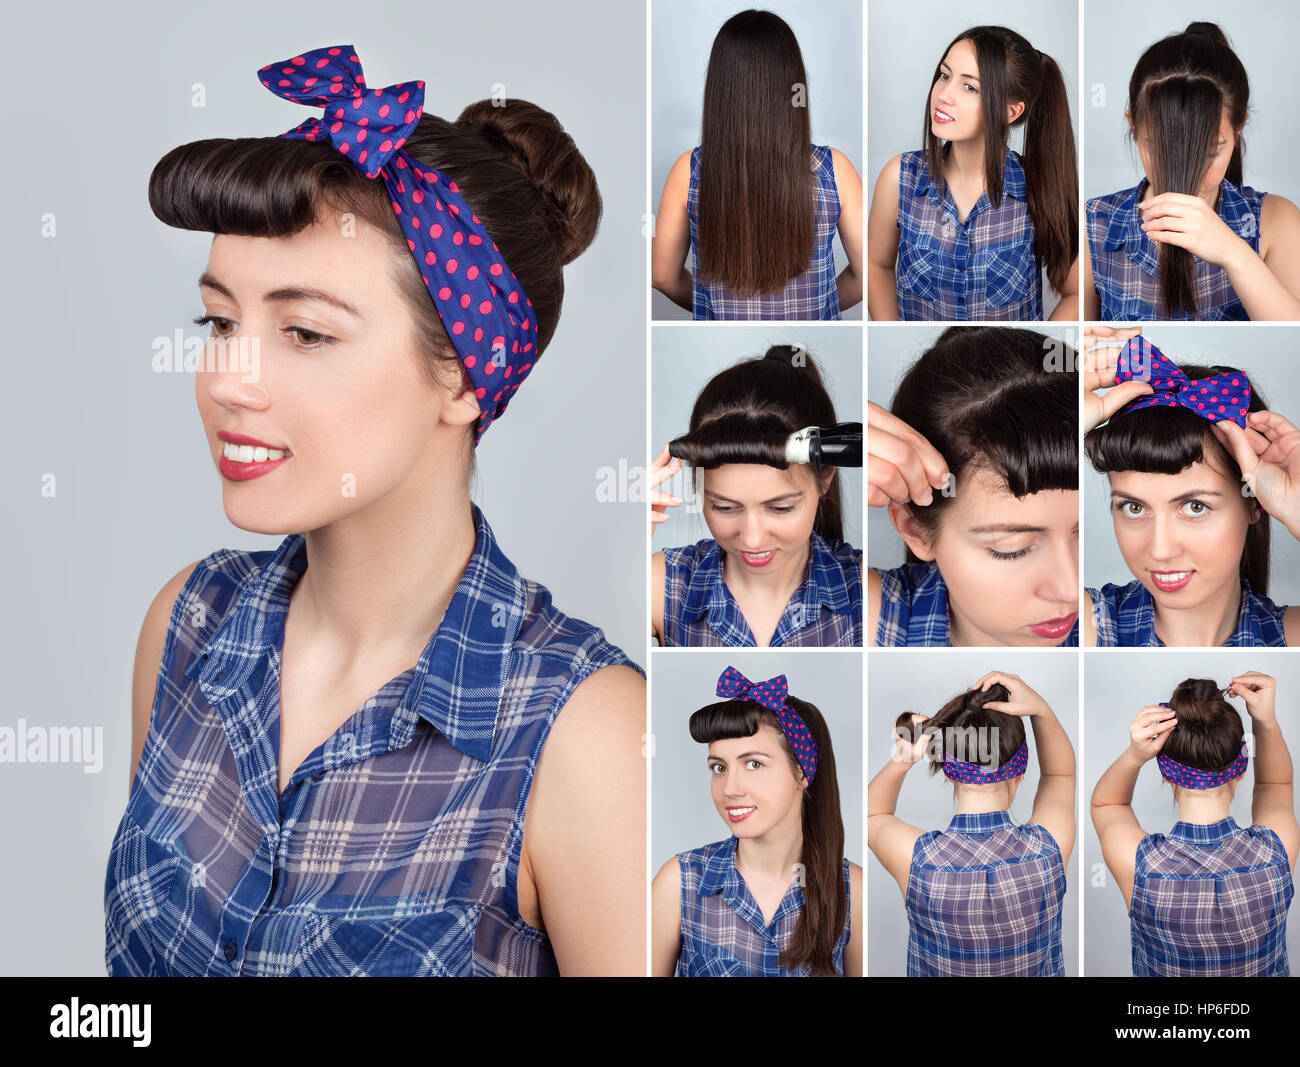 coiffure simple bun tutoriel pour femme coiffure pour cheveux longs style pin up banque d. Black Bedroom Furniture Sets. Home Design Ideas